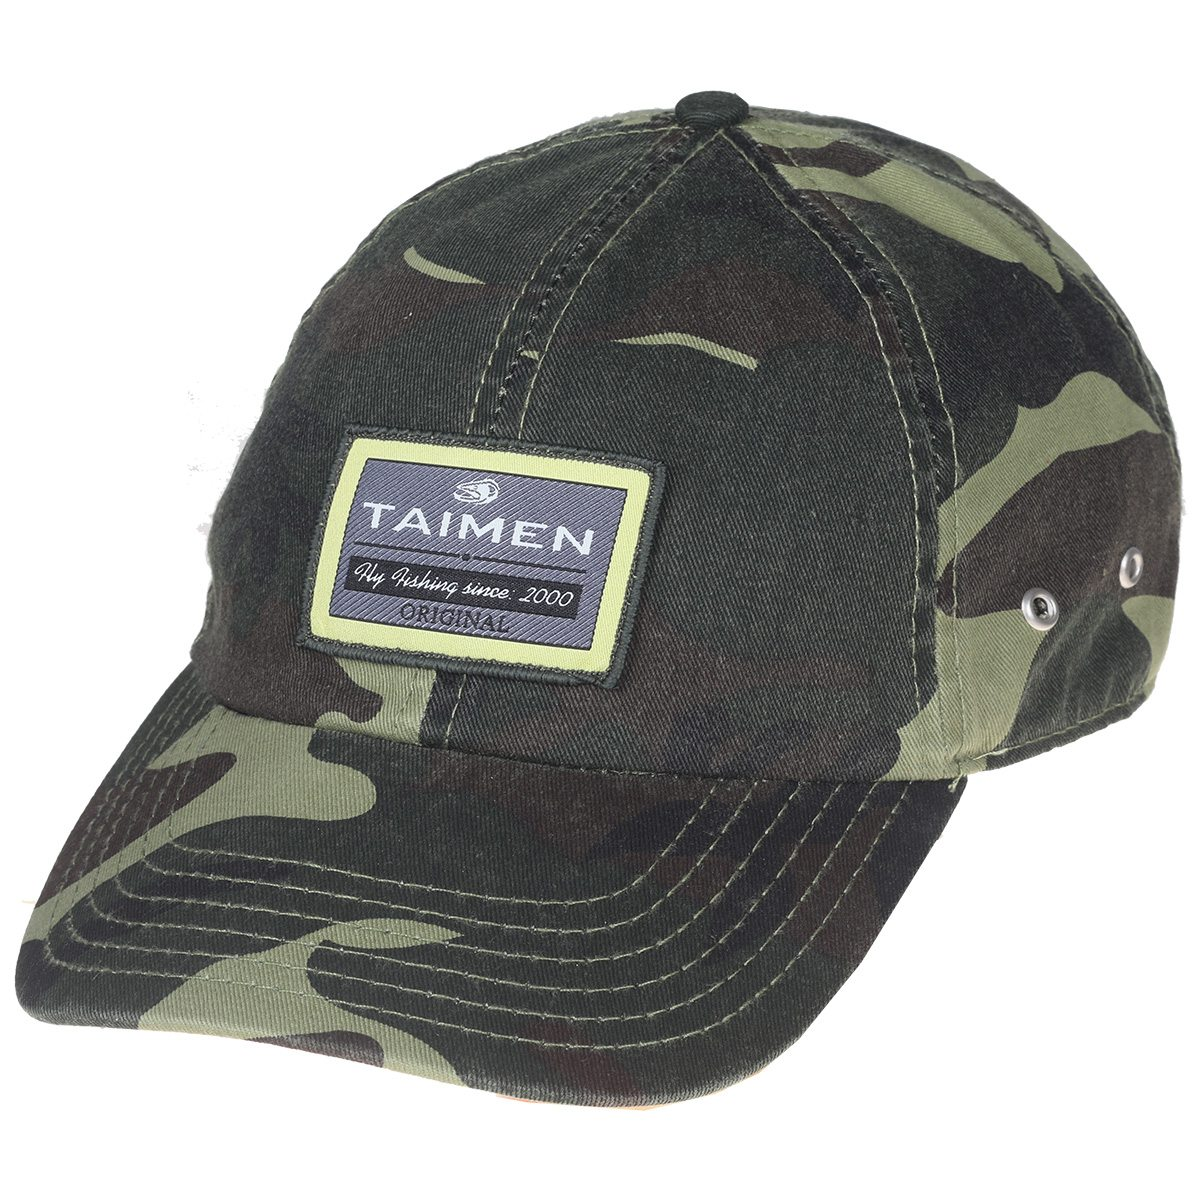 Taimen Fishing Cap Camo